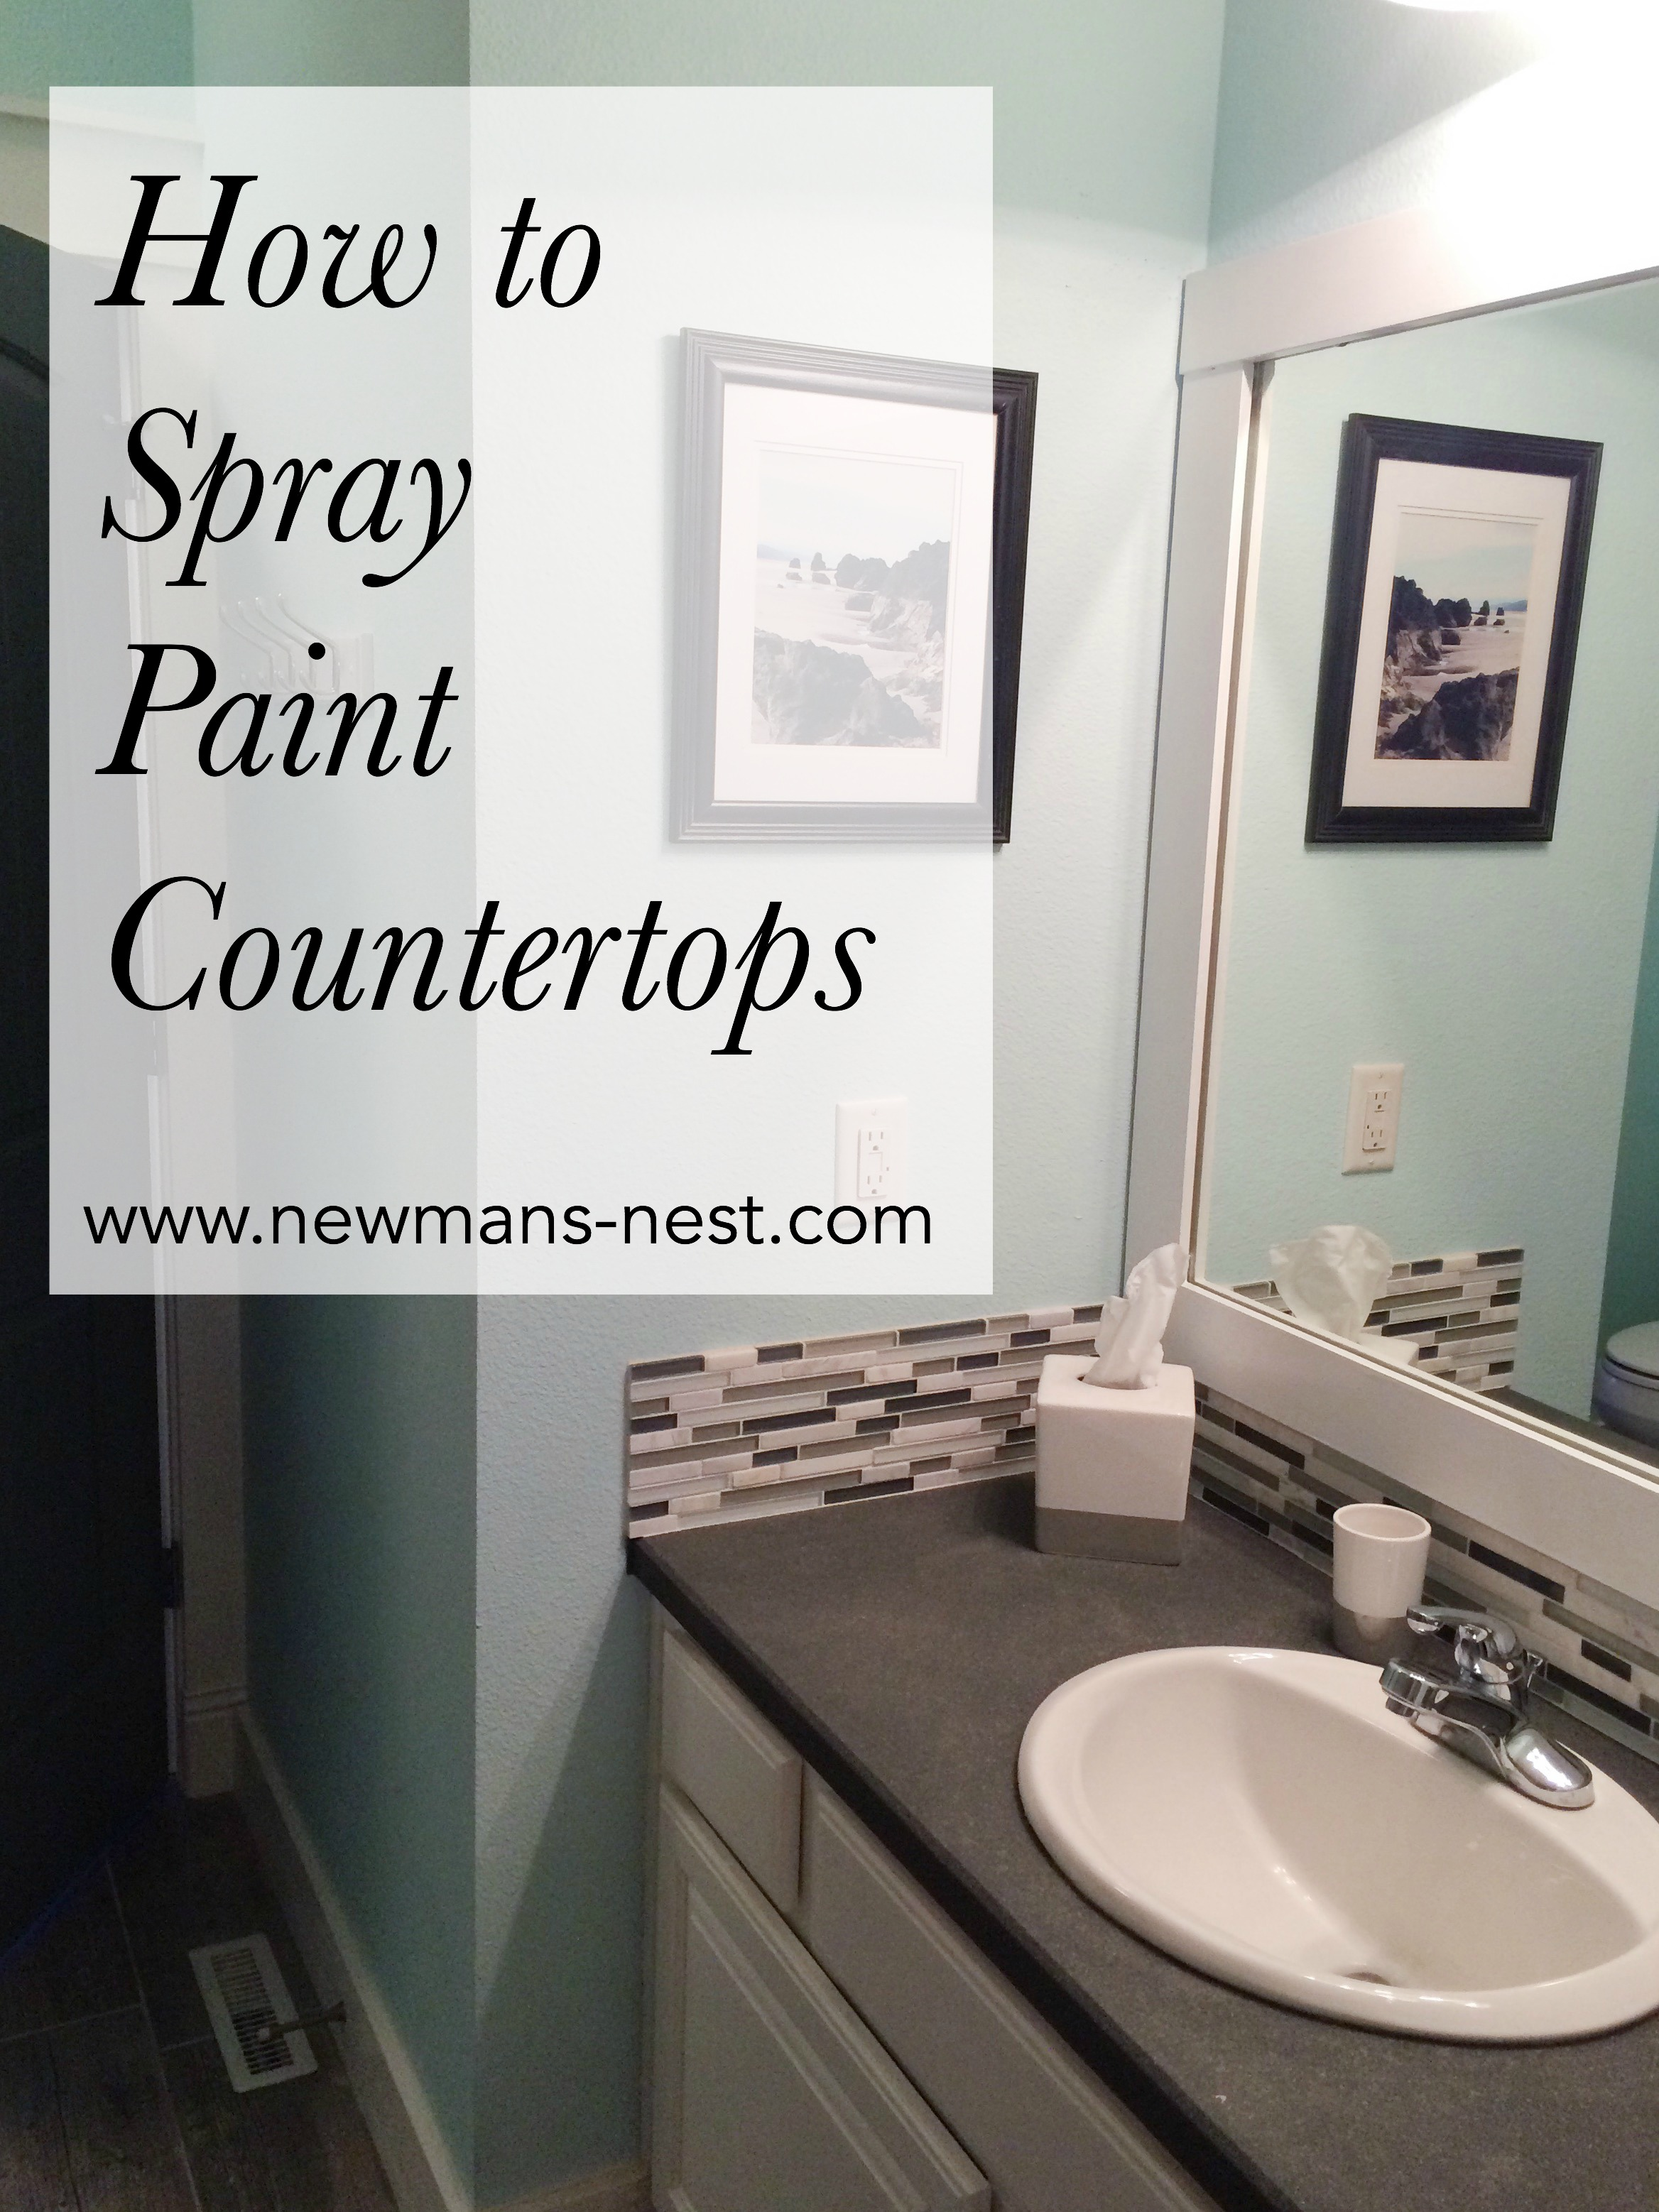 Countertop Paint Australia : Spray Painted Countertops - Newmans Nest